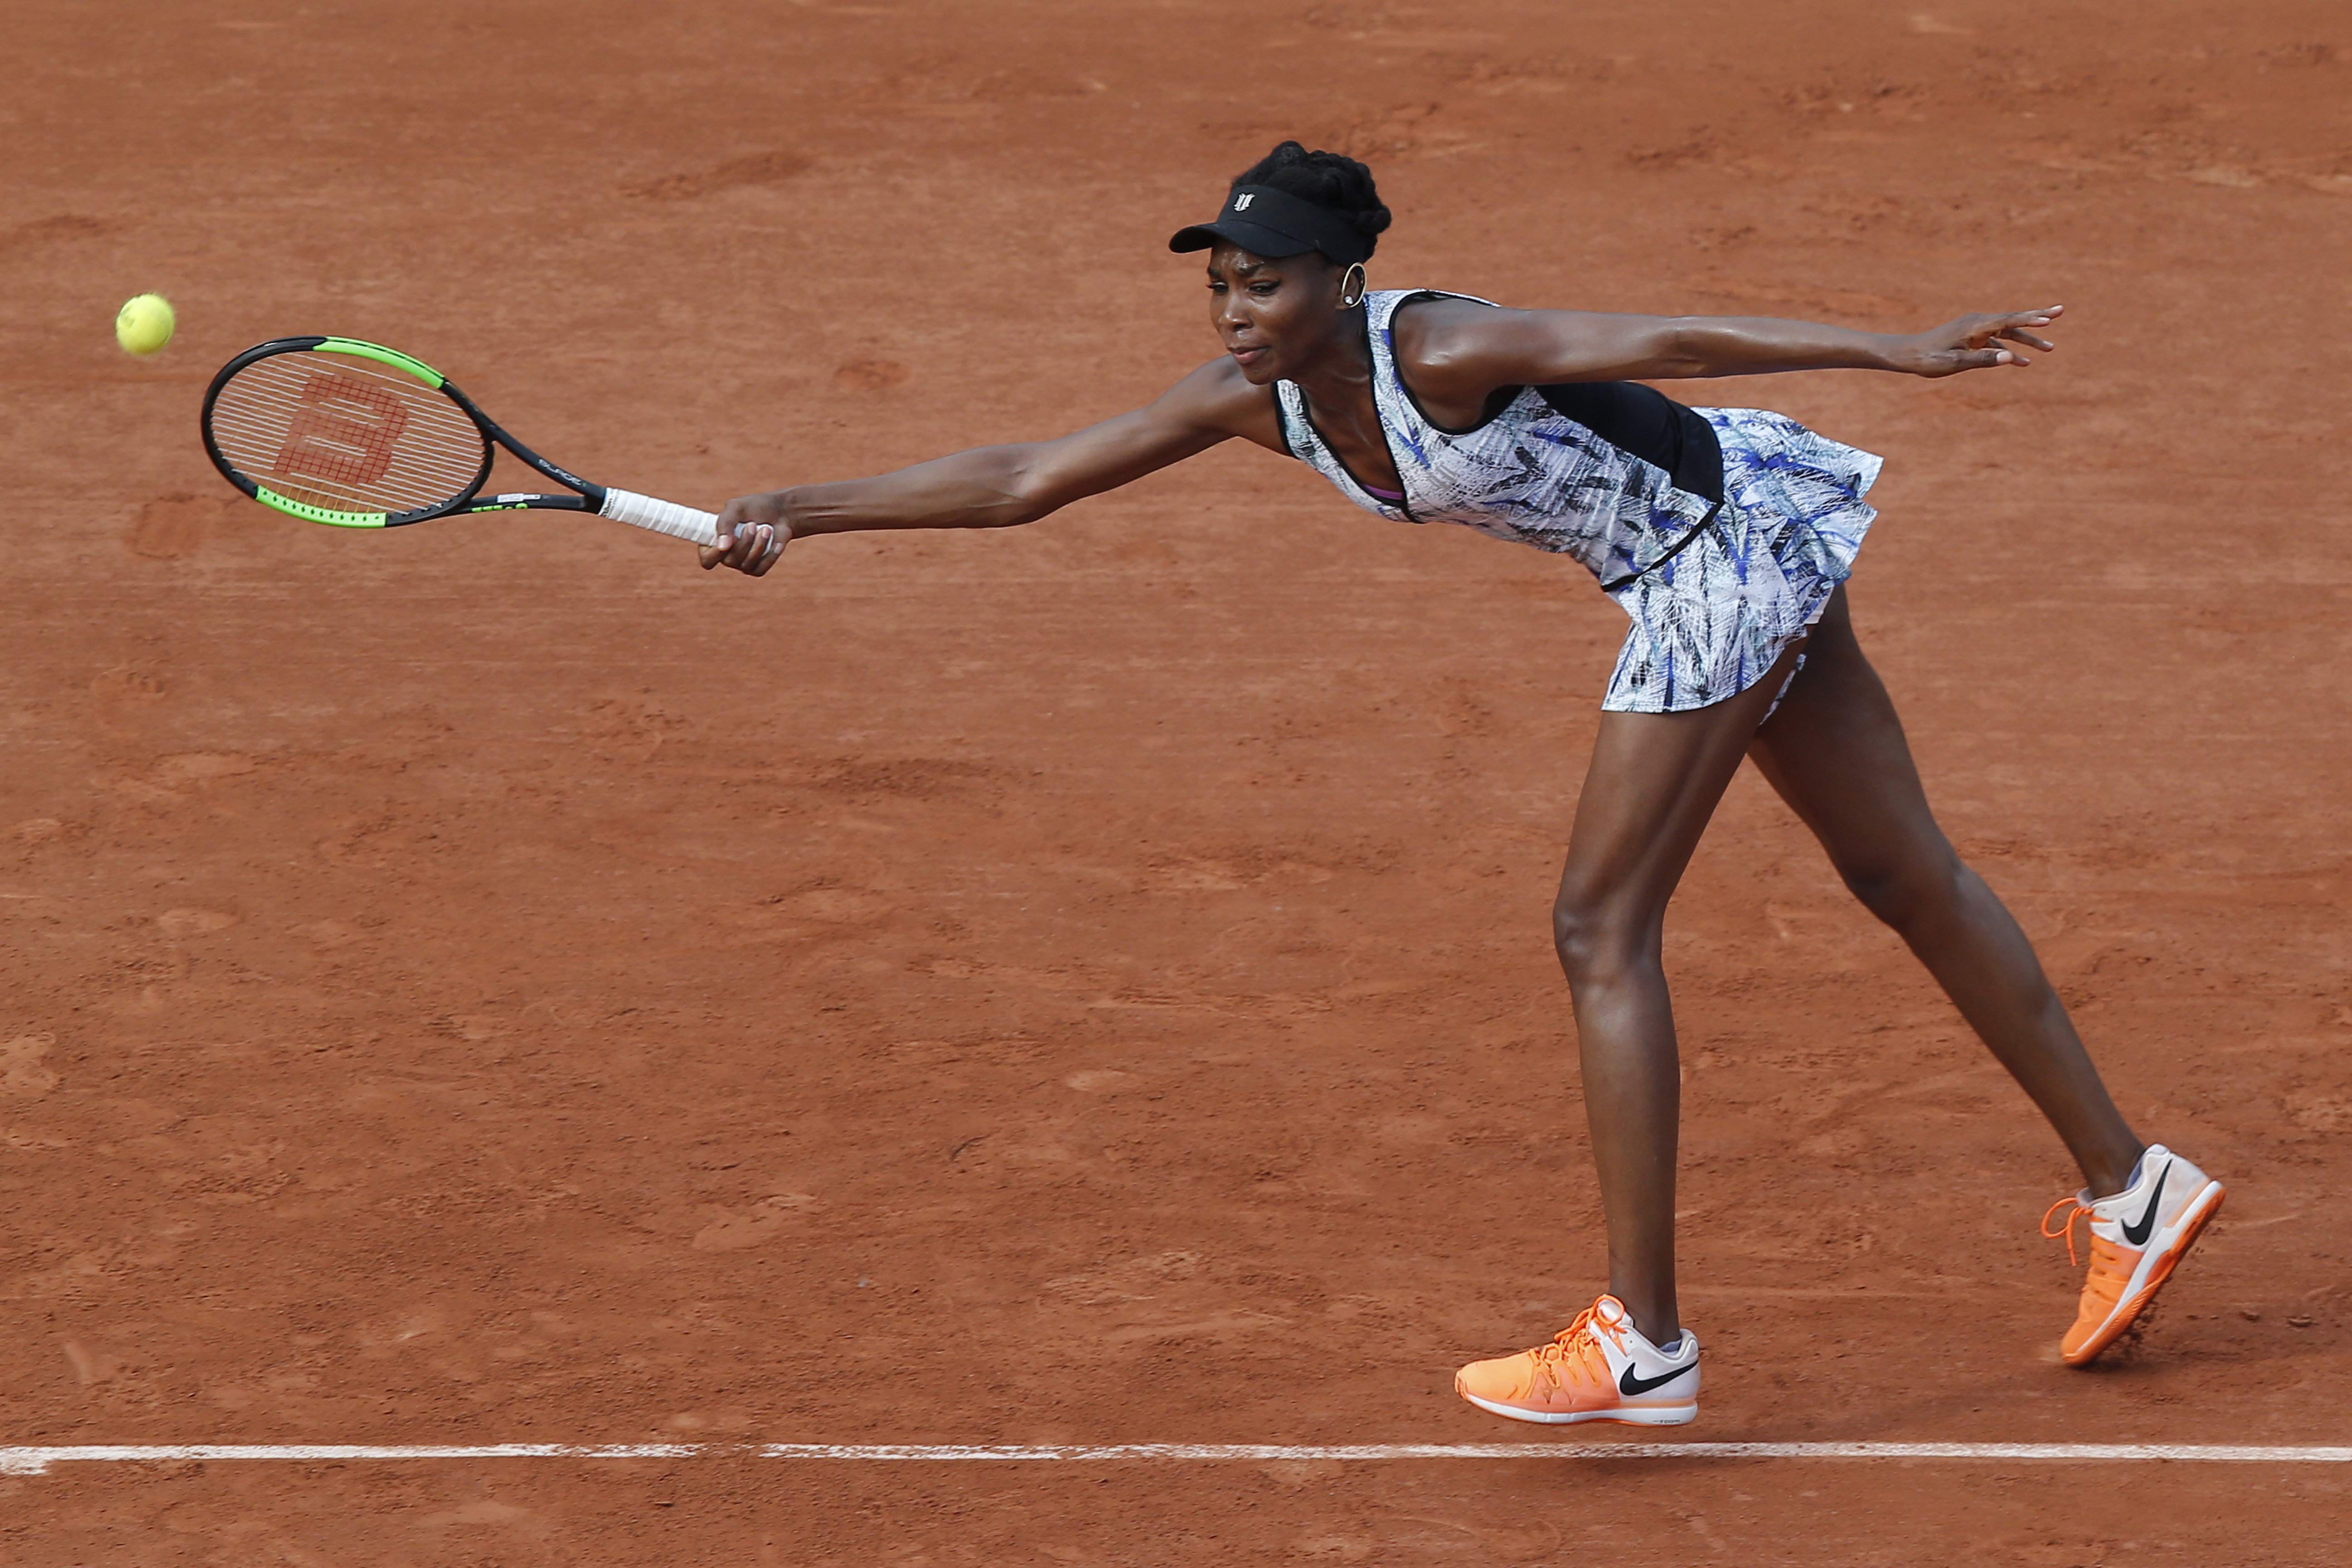 Venus Williams of the U.S. plays a shot against China's Qiang Wang during their first round match of the French Open tennis tournament at the Roland Garros stadium, in Paris, France. Sunday, May 28, 2017. (AP Photo/Michel Euler)